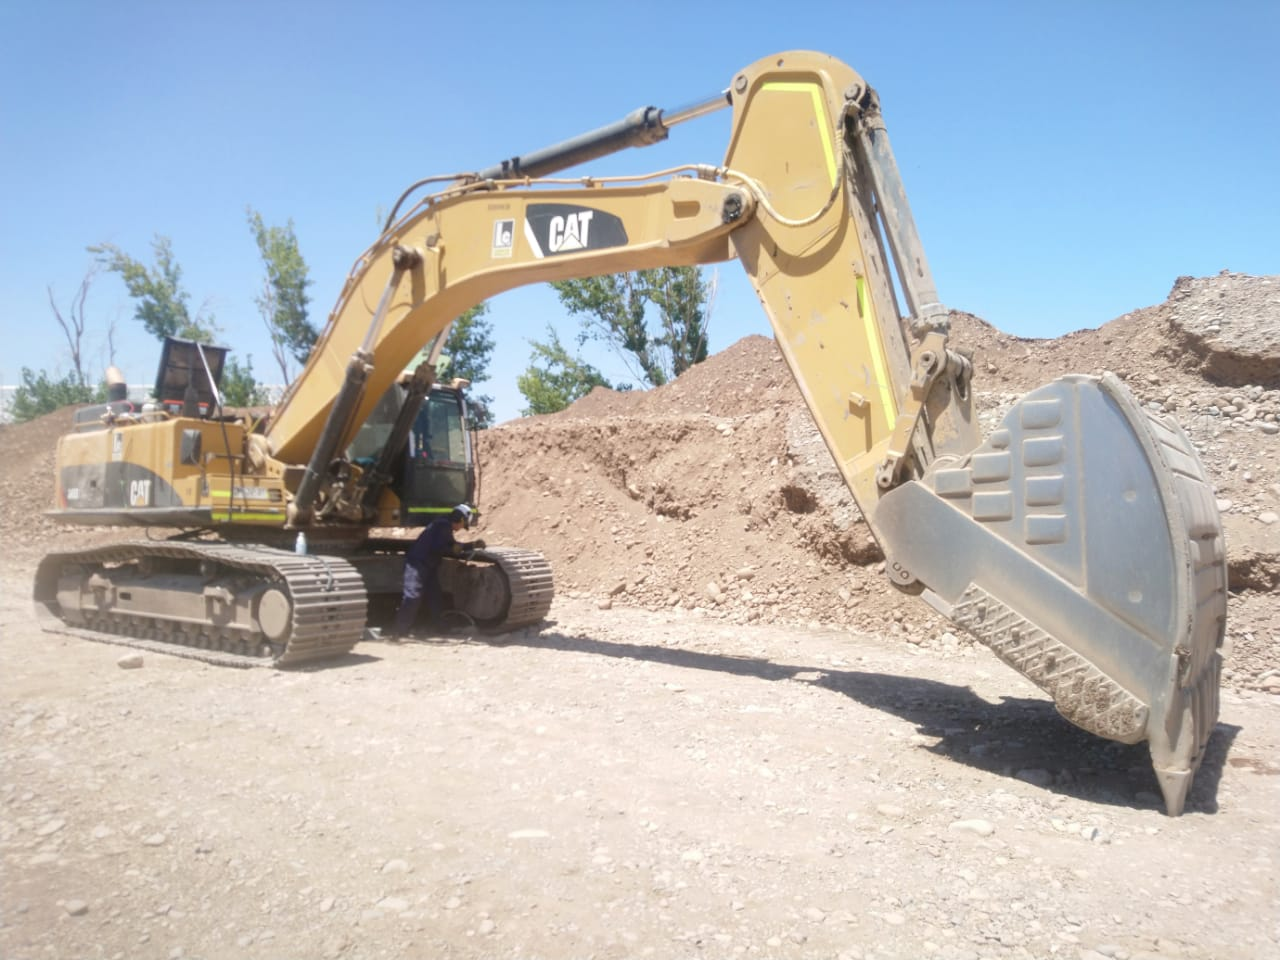 Digger on construction site